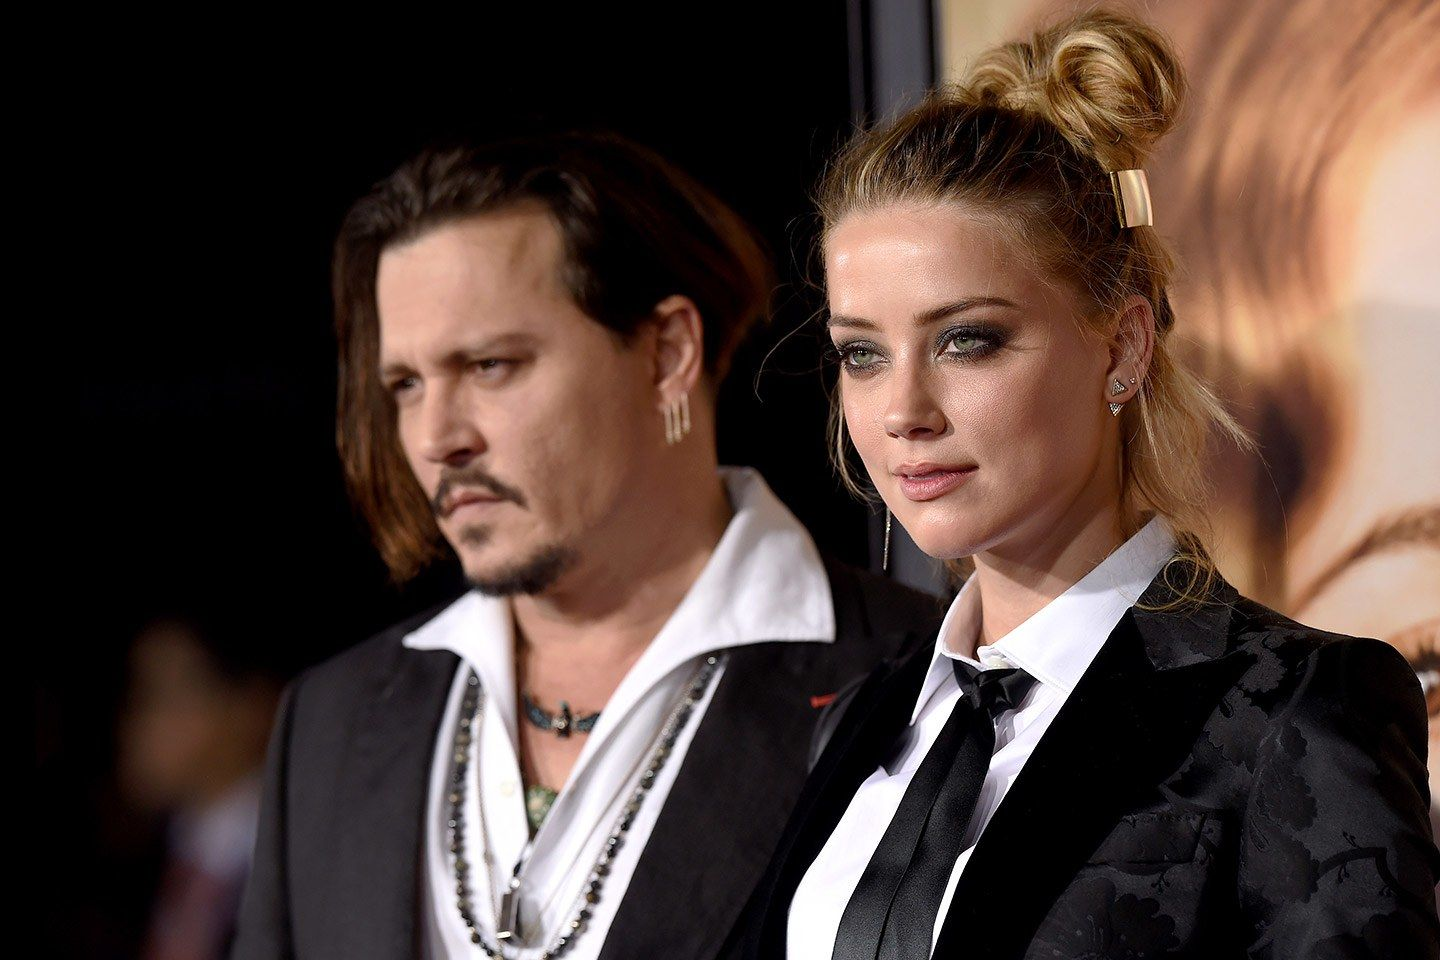 Johnny Depp habría intentado perjudicar a su ex Amber Heard ante Warner Bros